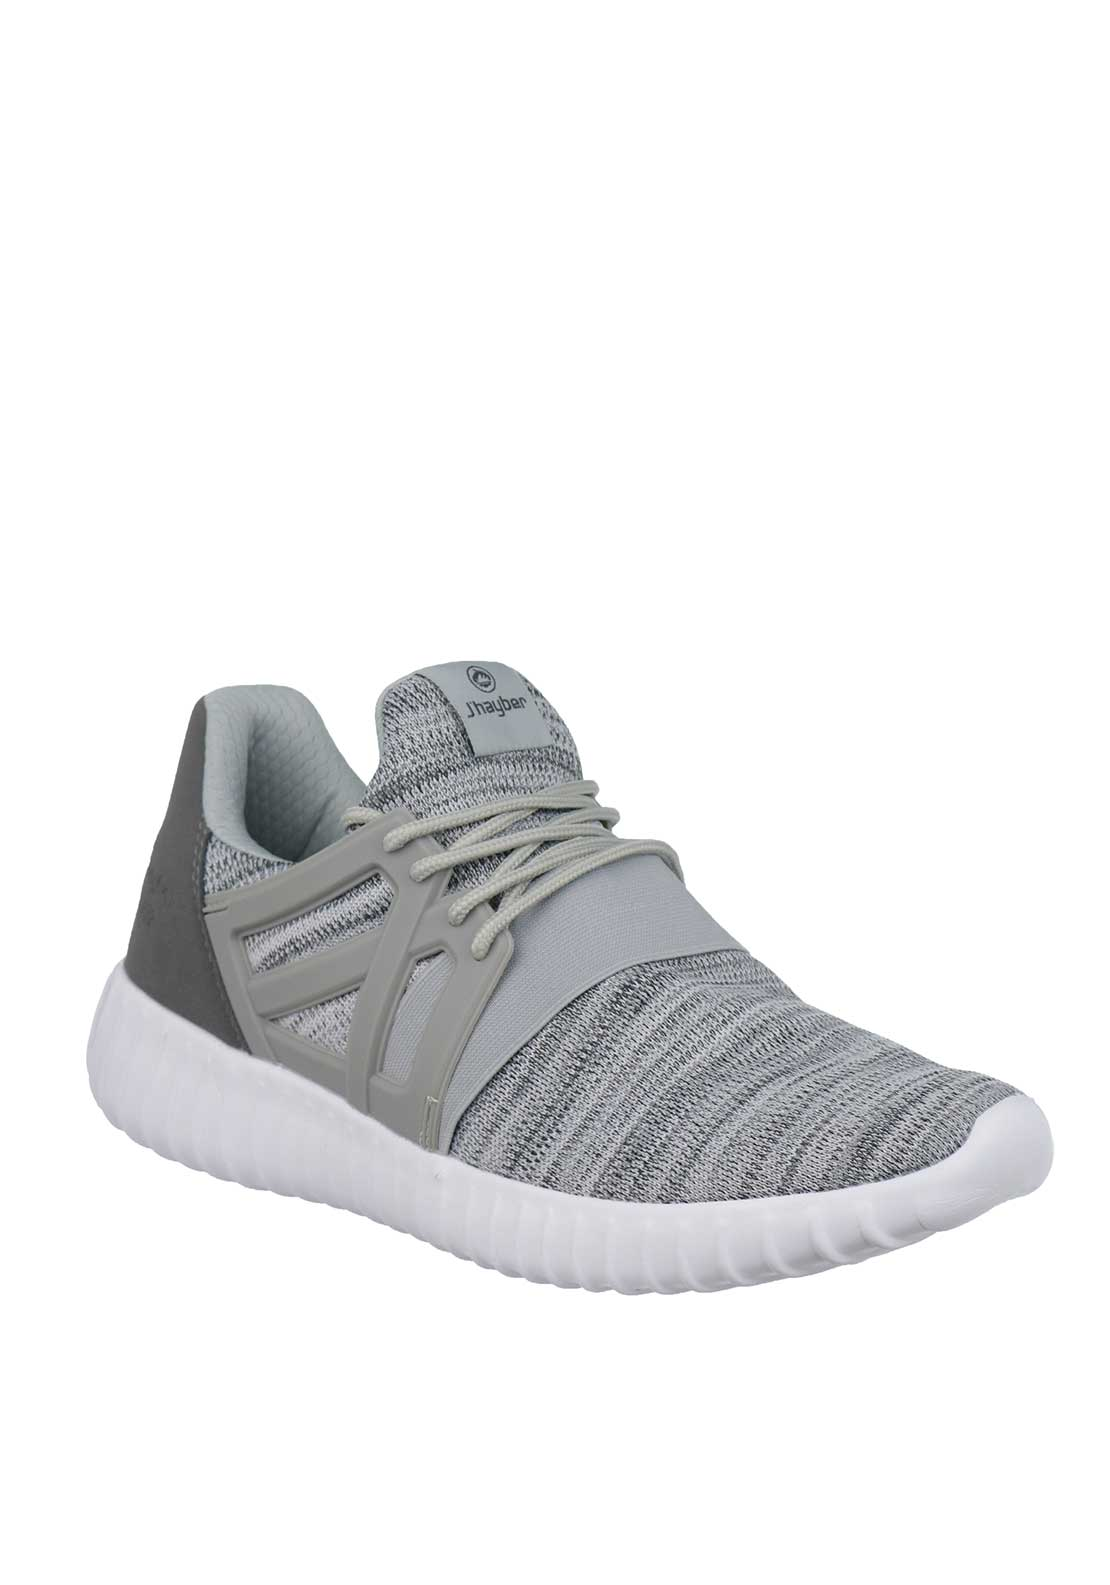 J'hayber Woven Knit Lace Trainers, Grey